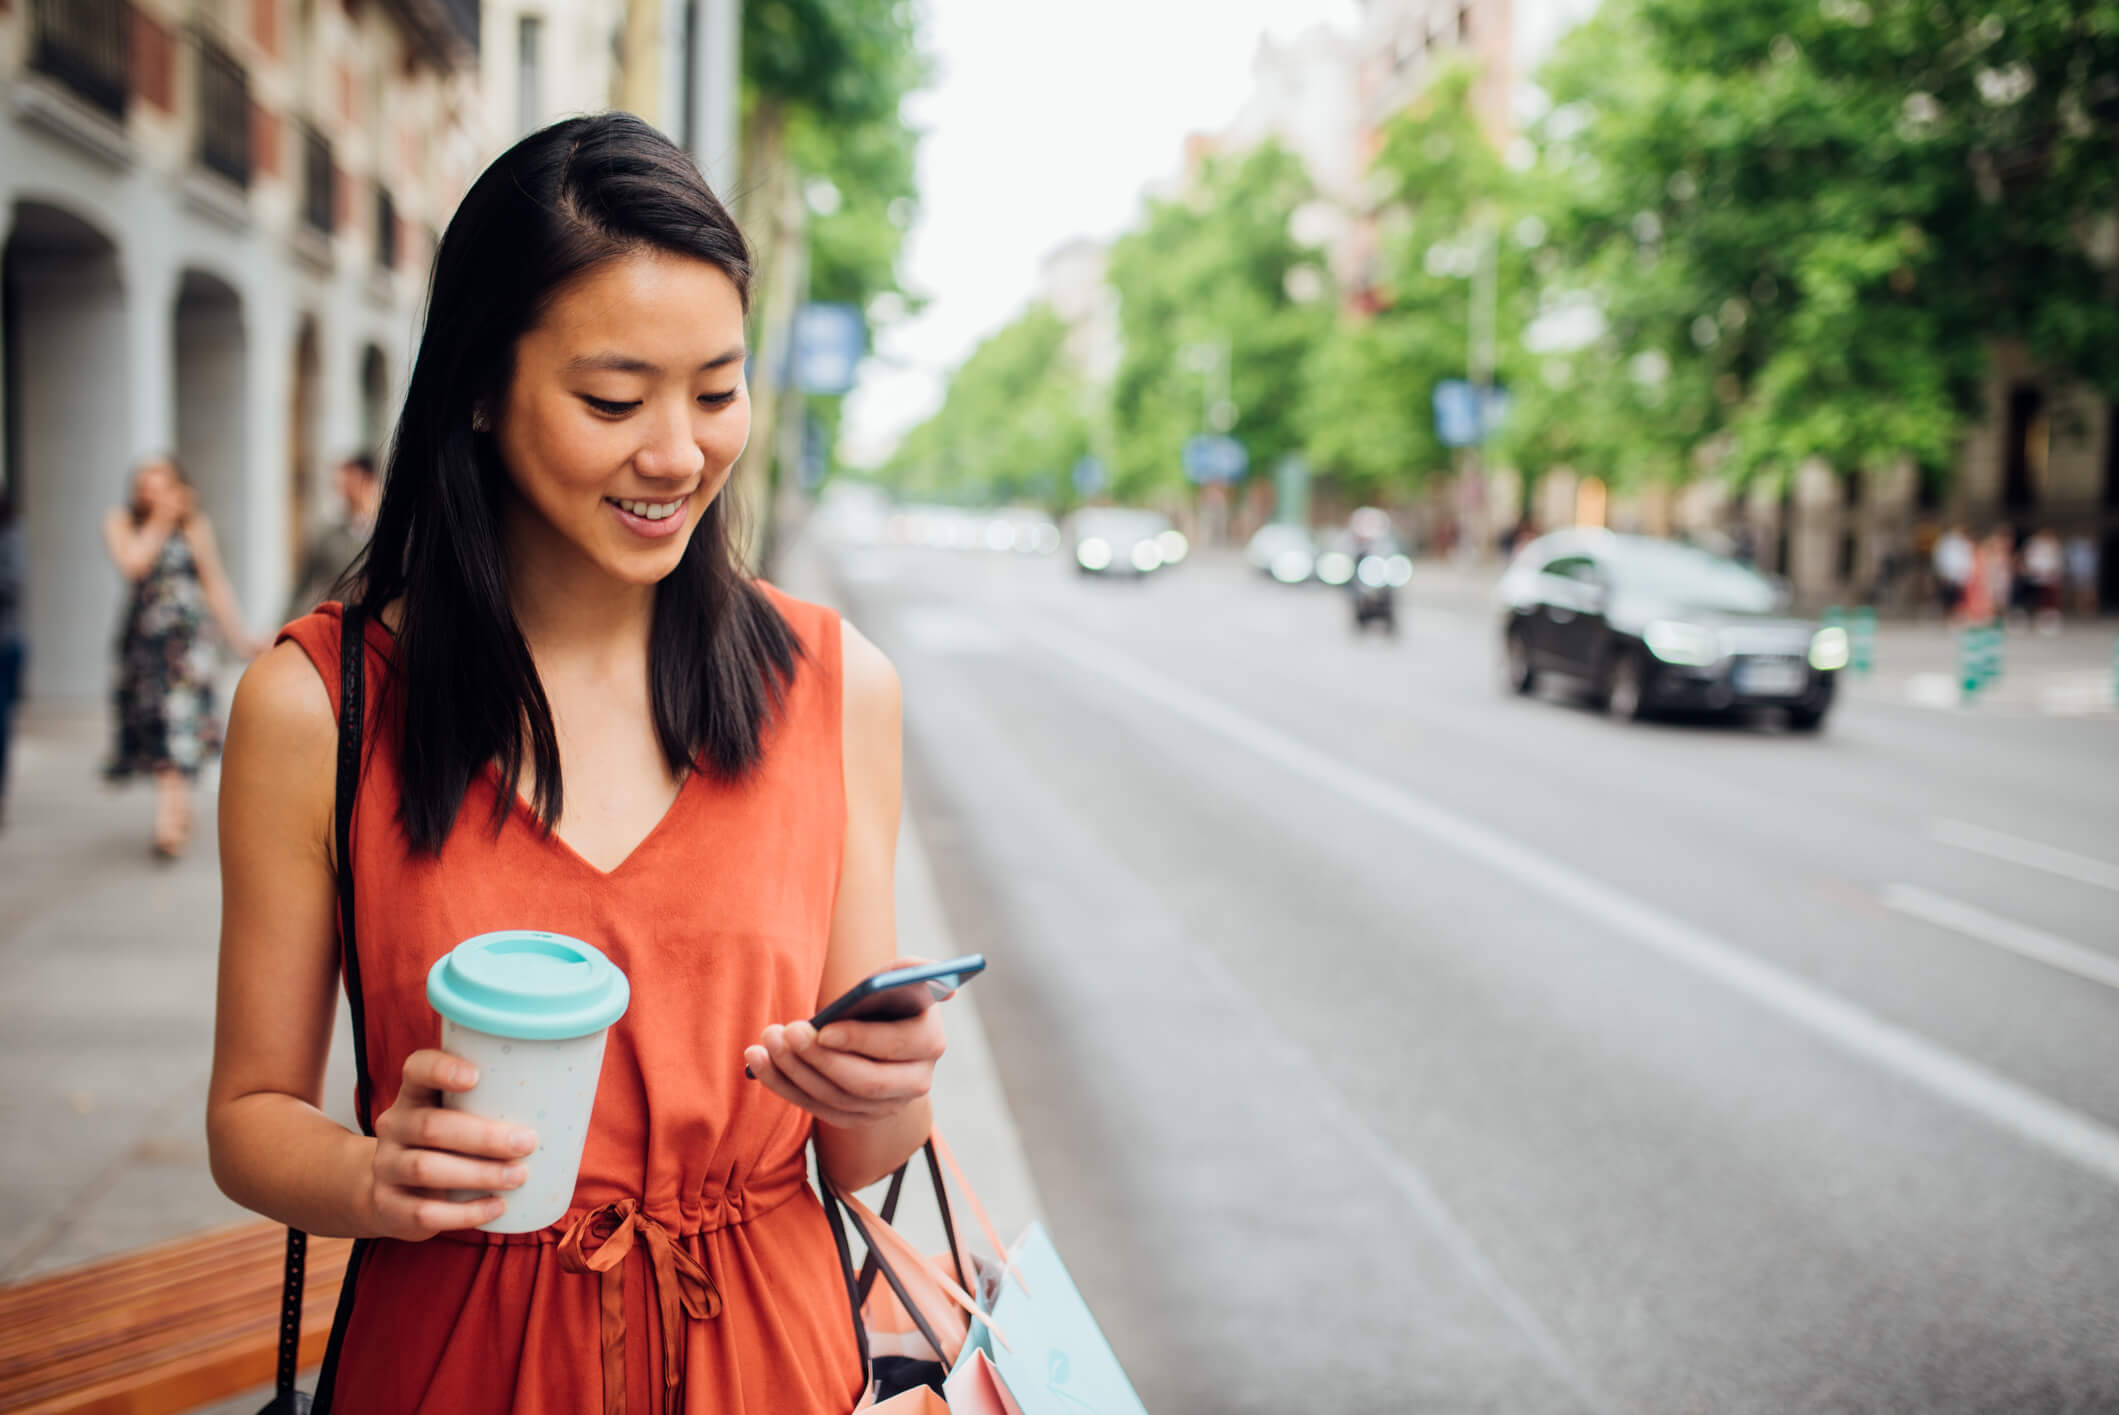 Woman Using Her Phone Outside